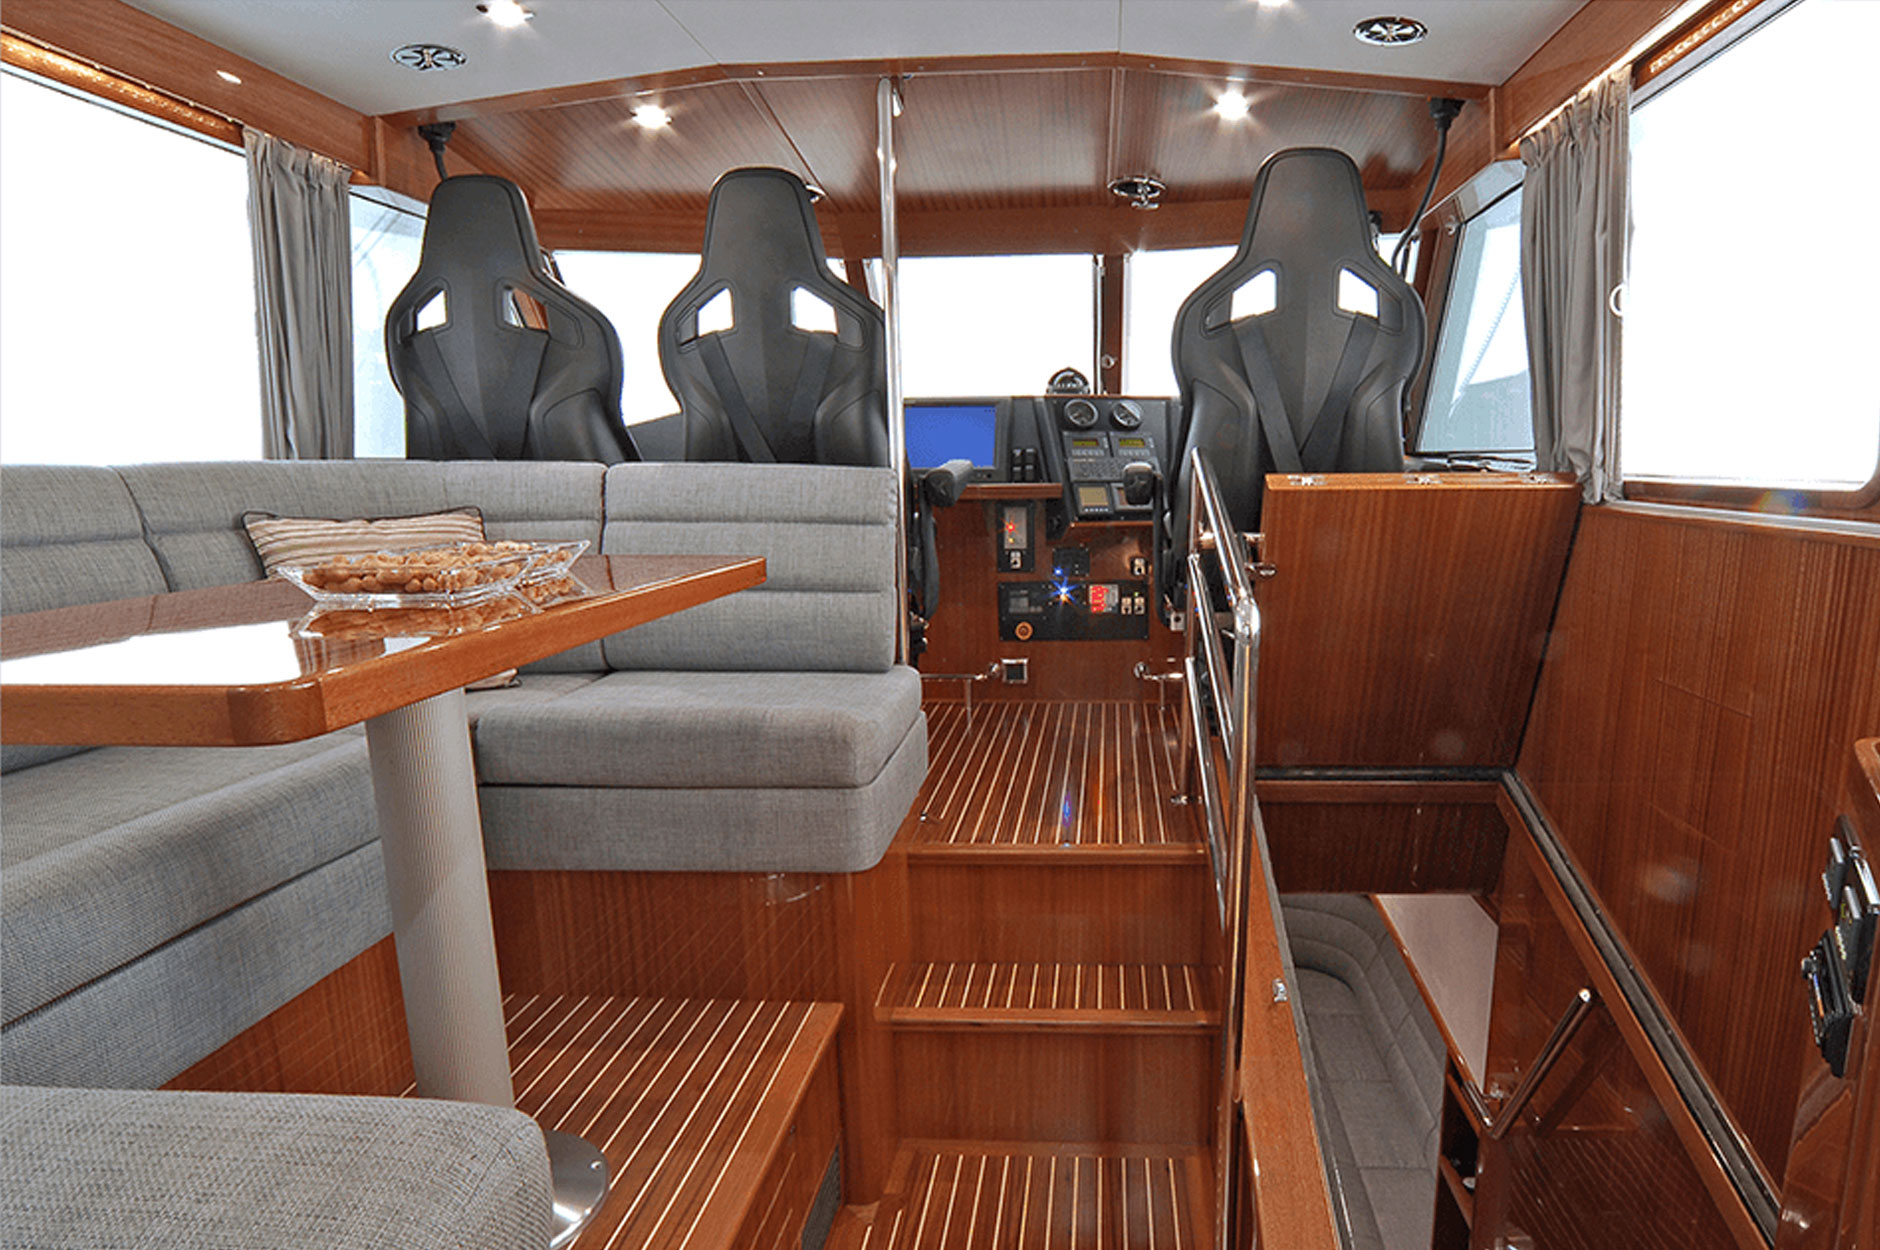 The durable yet, high quality interiors of the VIP Soc Dockets Series performance vessels.